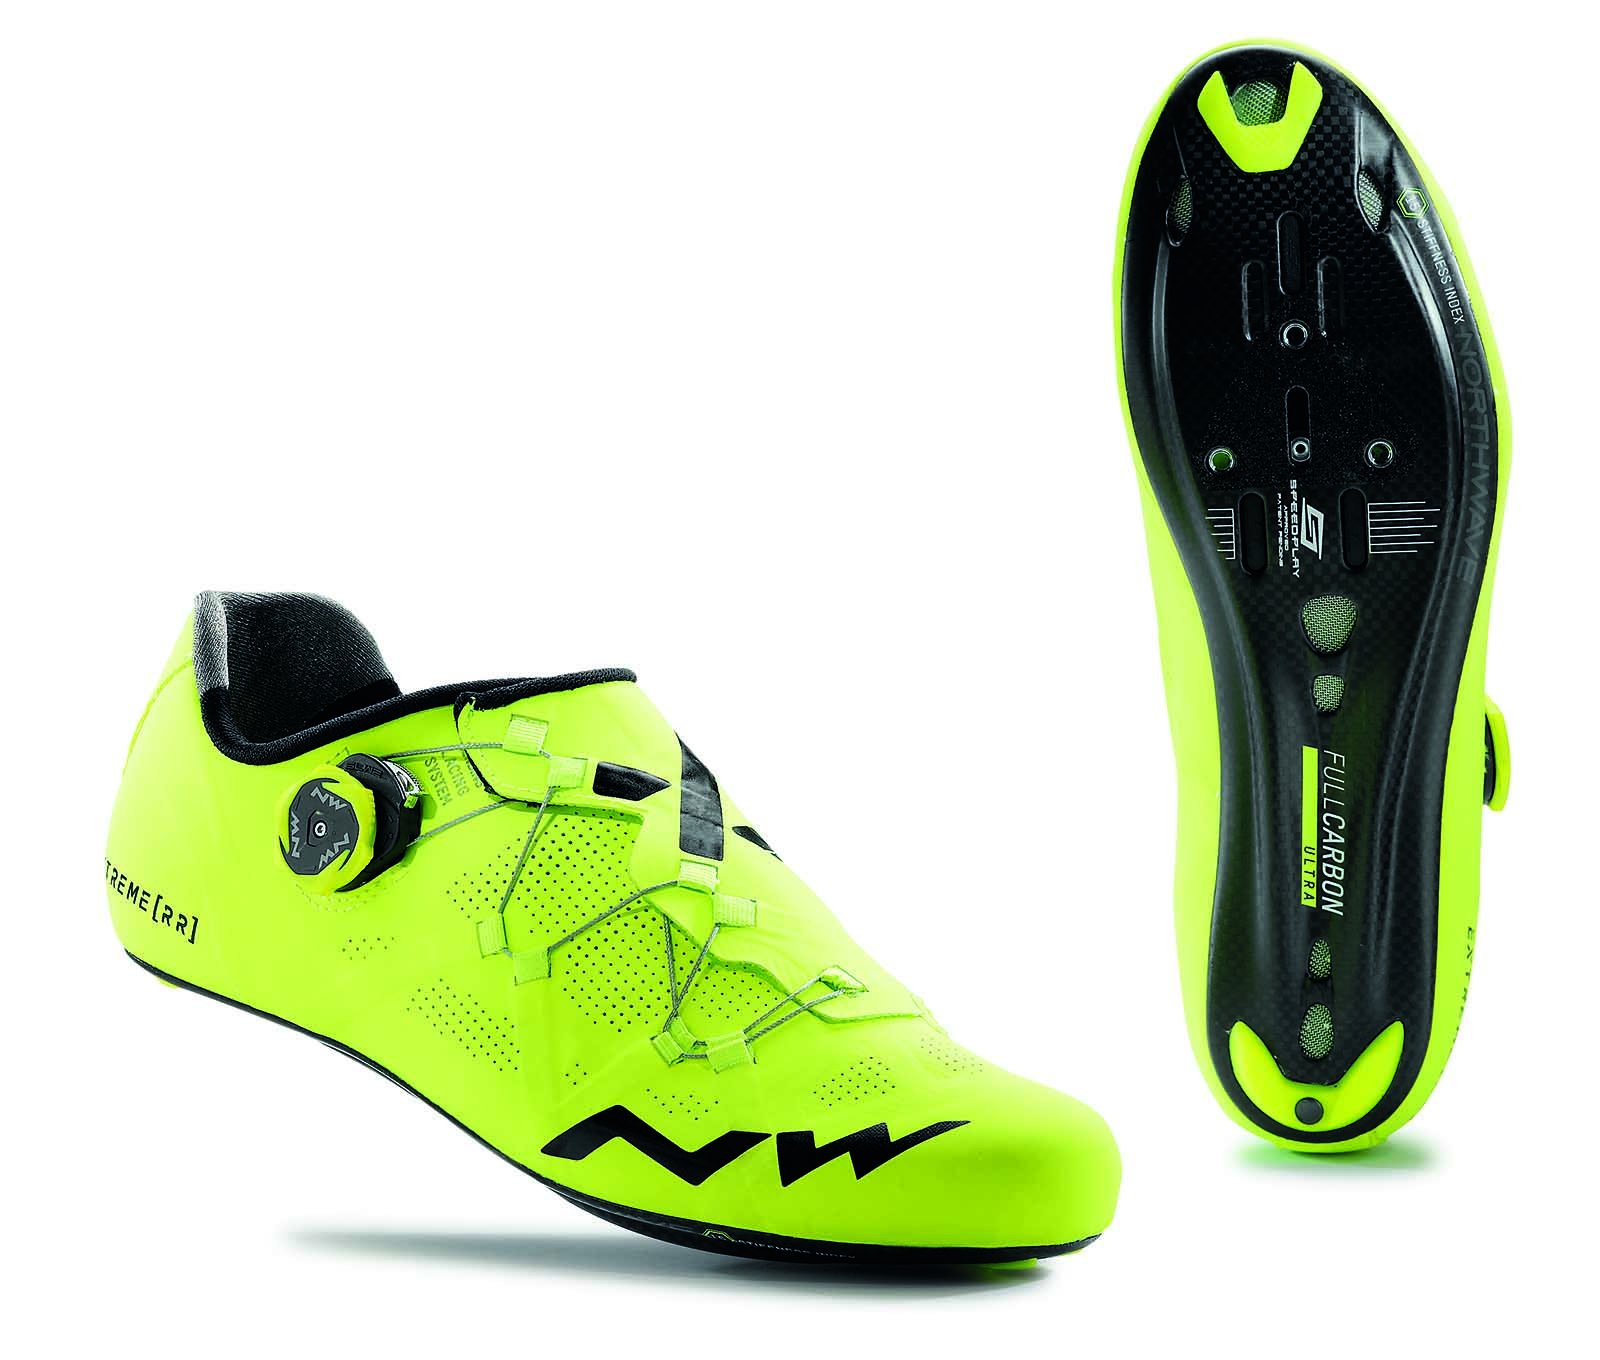 NORTHWAVE Man road cycling shoes EXTREME RR fluo yellow (39,5) by Northwave